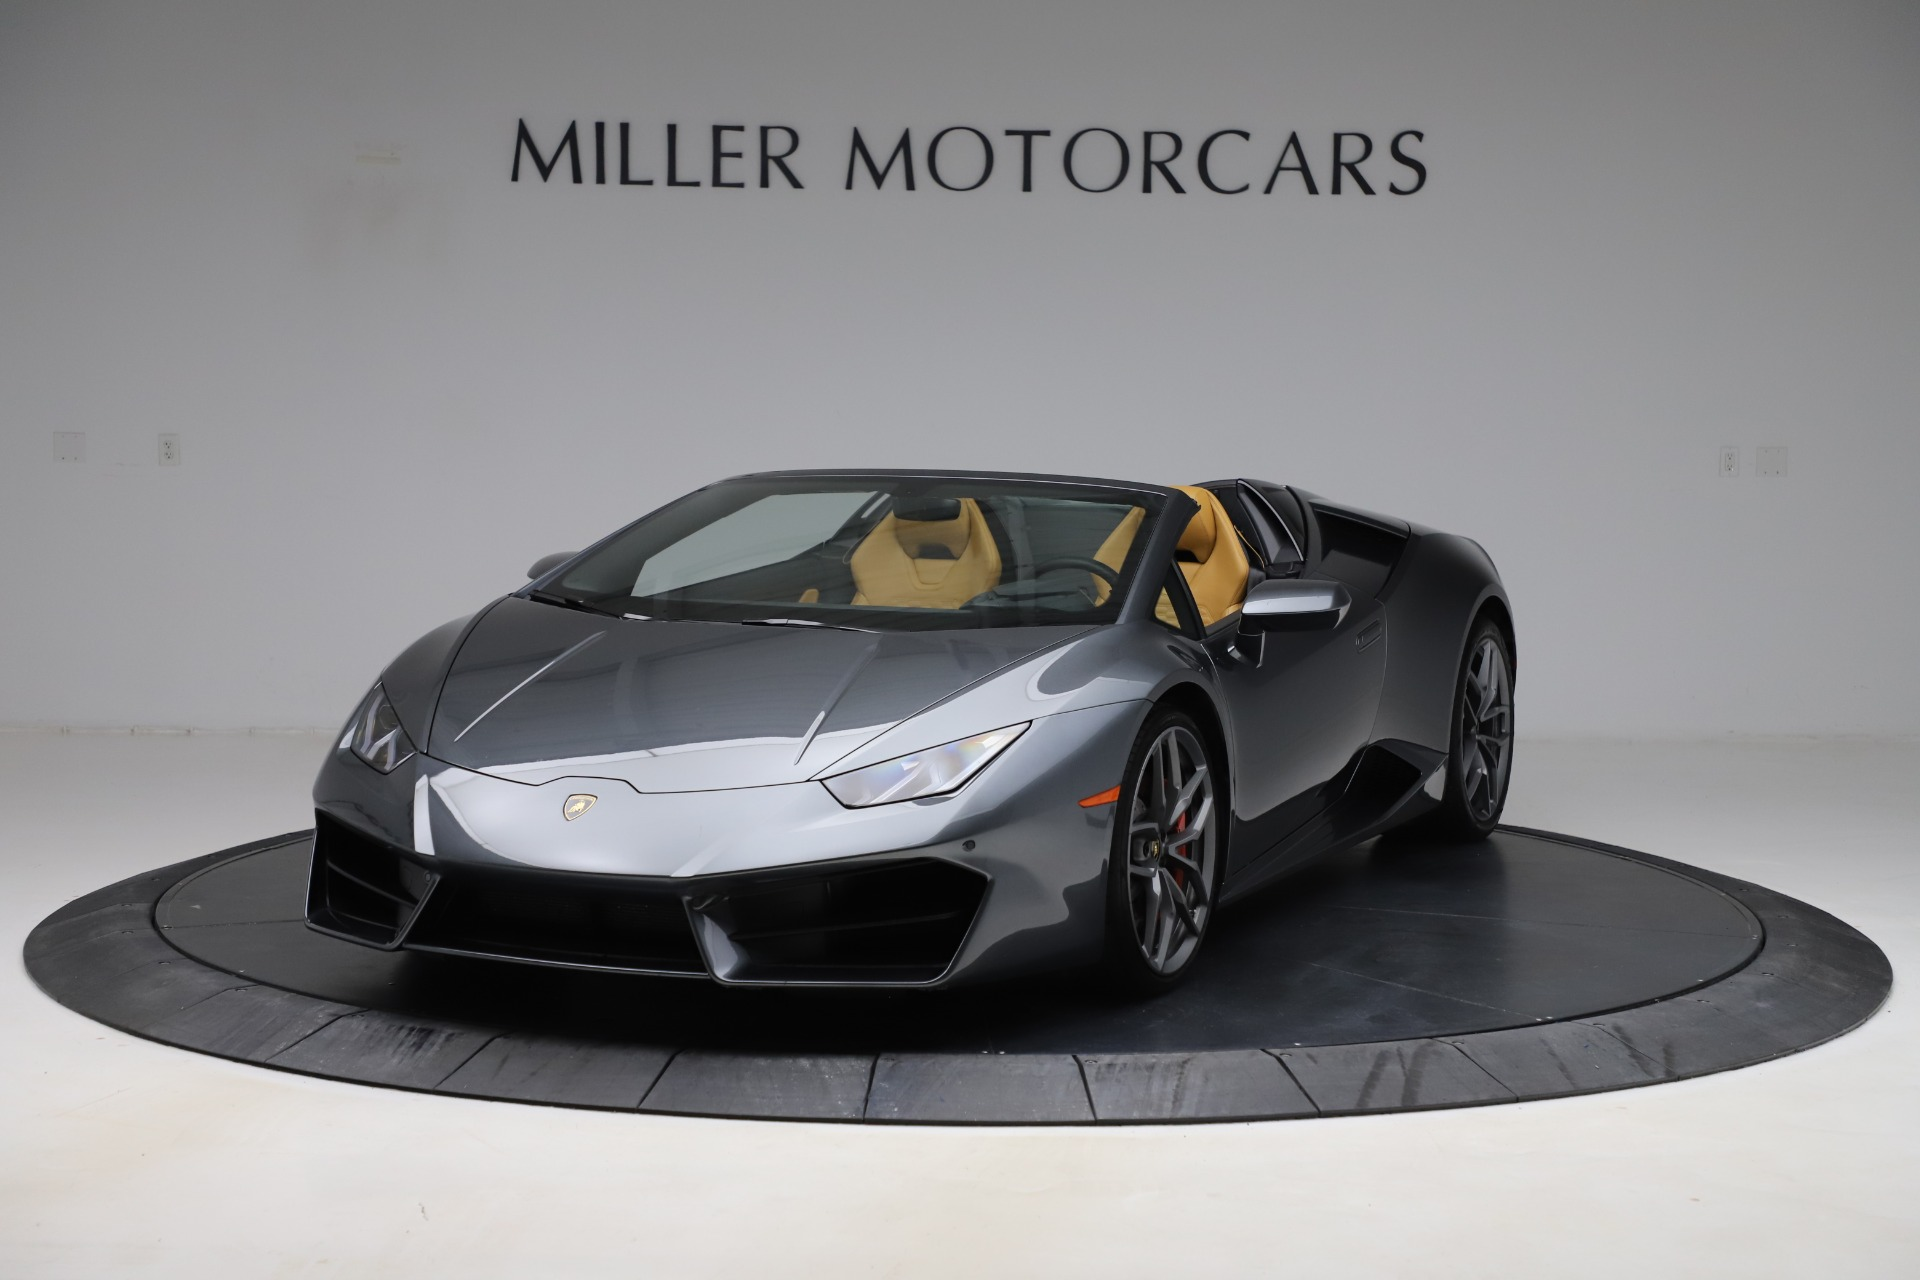 Used 2018 Lamborghini Huracan LP 580-2 Spyder for sale Call for price at Rolls-Royce Motor Cars Greenwich in Greenwich CT 06830 1